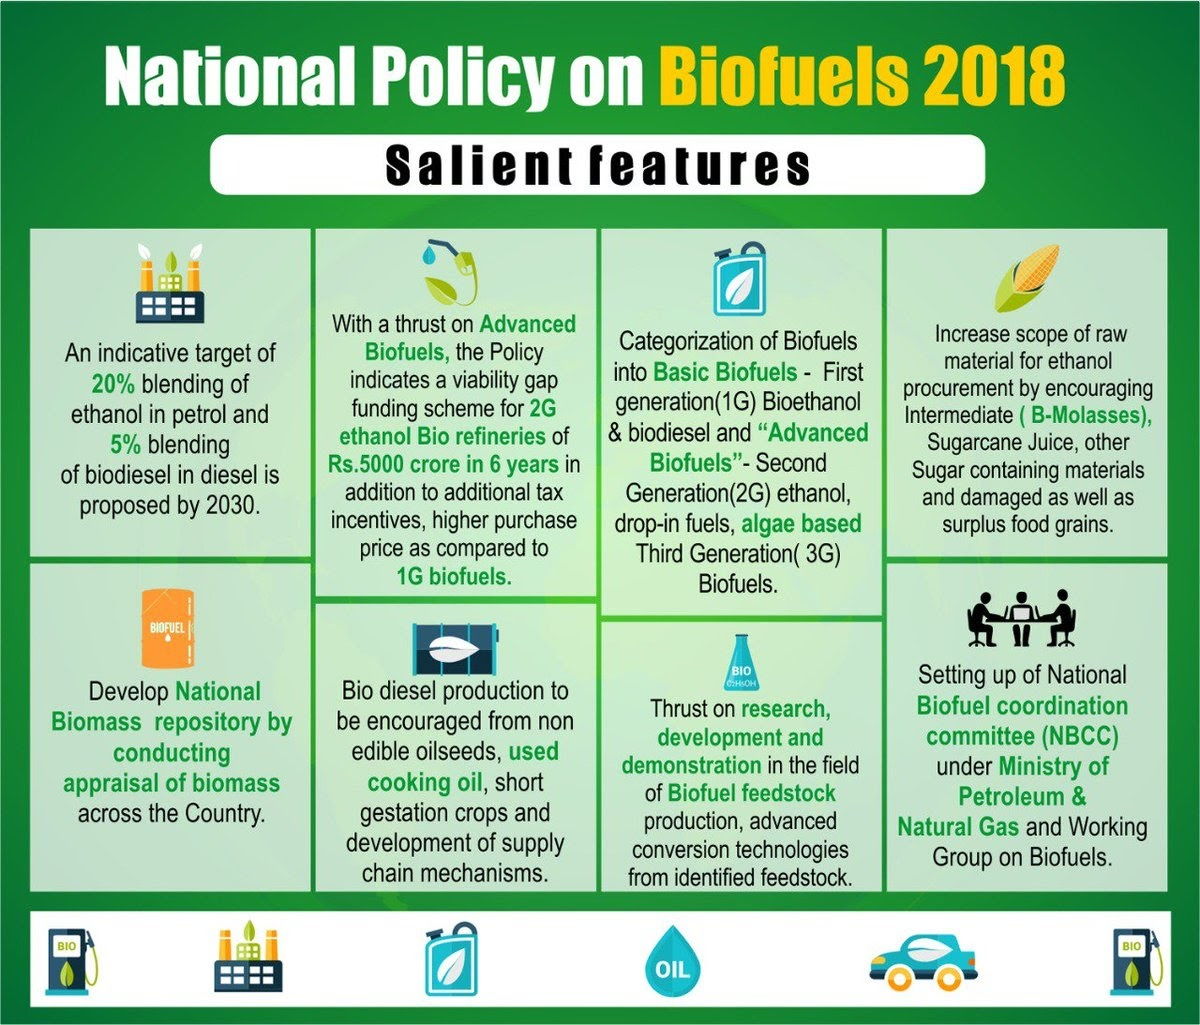 National-Policy-on-Biofuels-2018